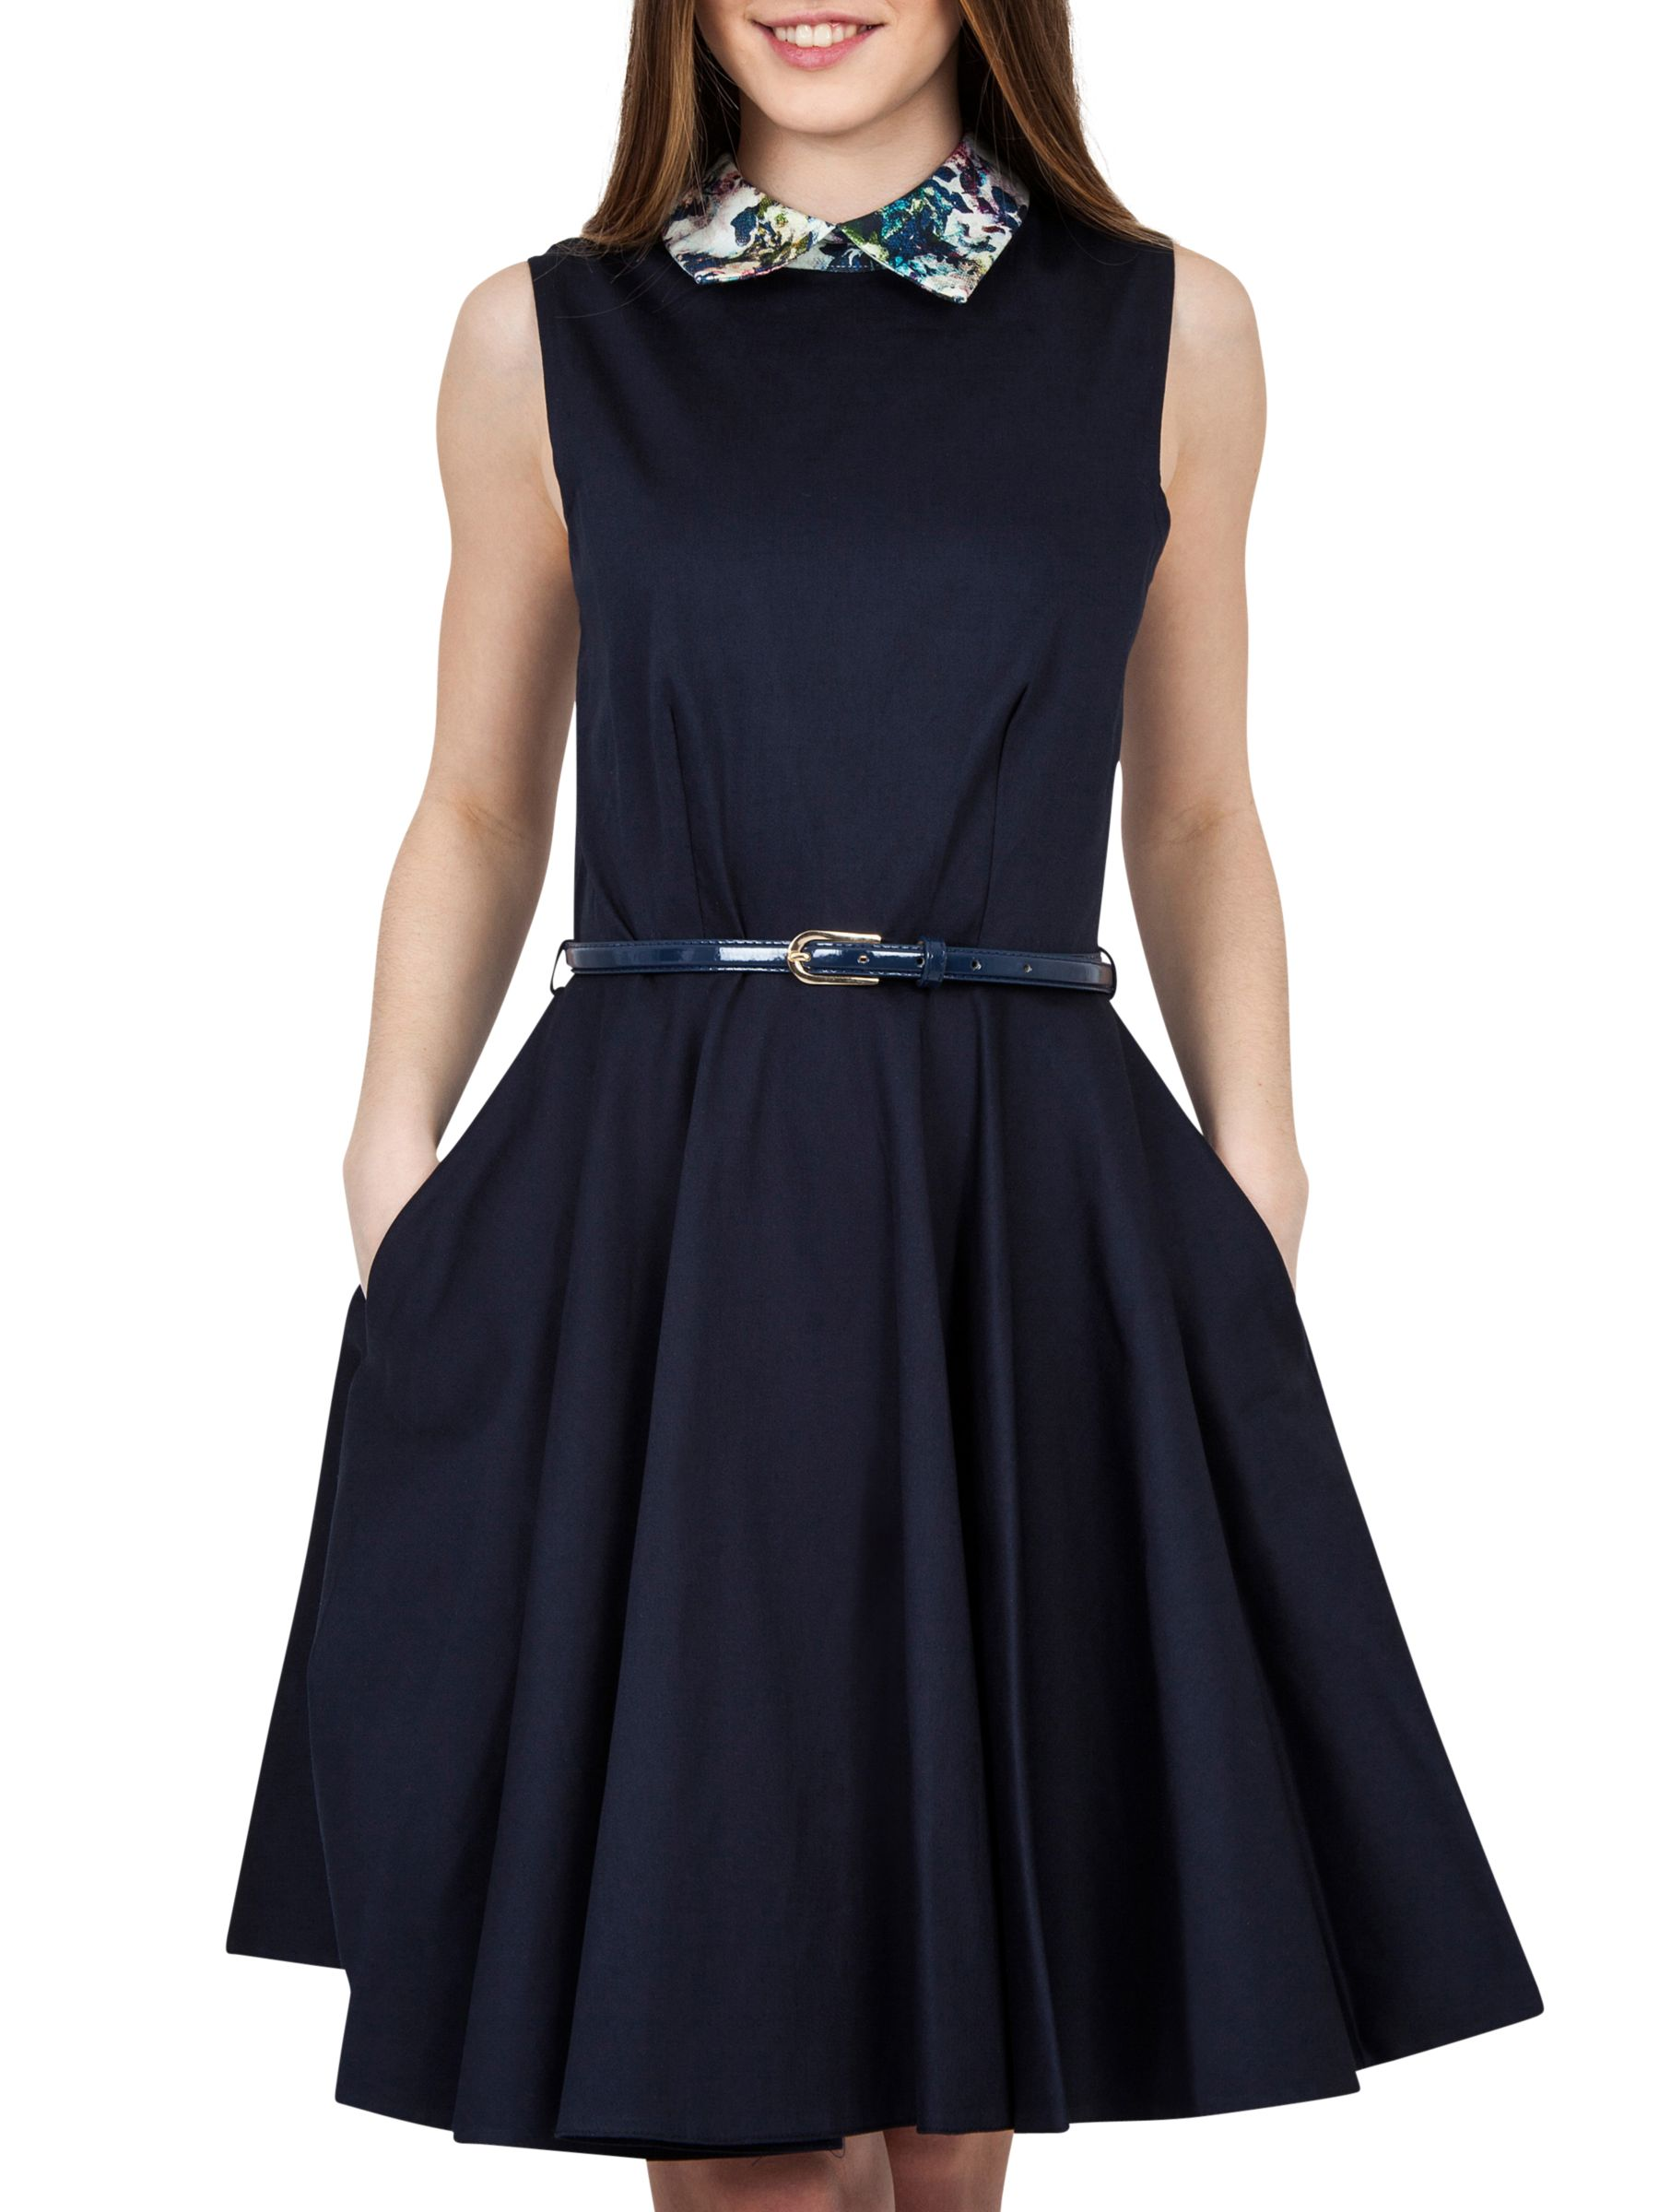 Closet Closet Contrast Belted Skater Dress, Multi